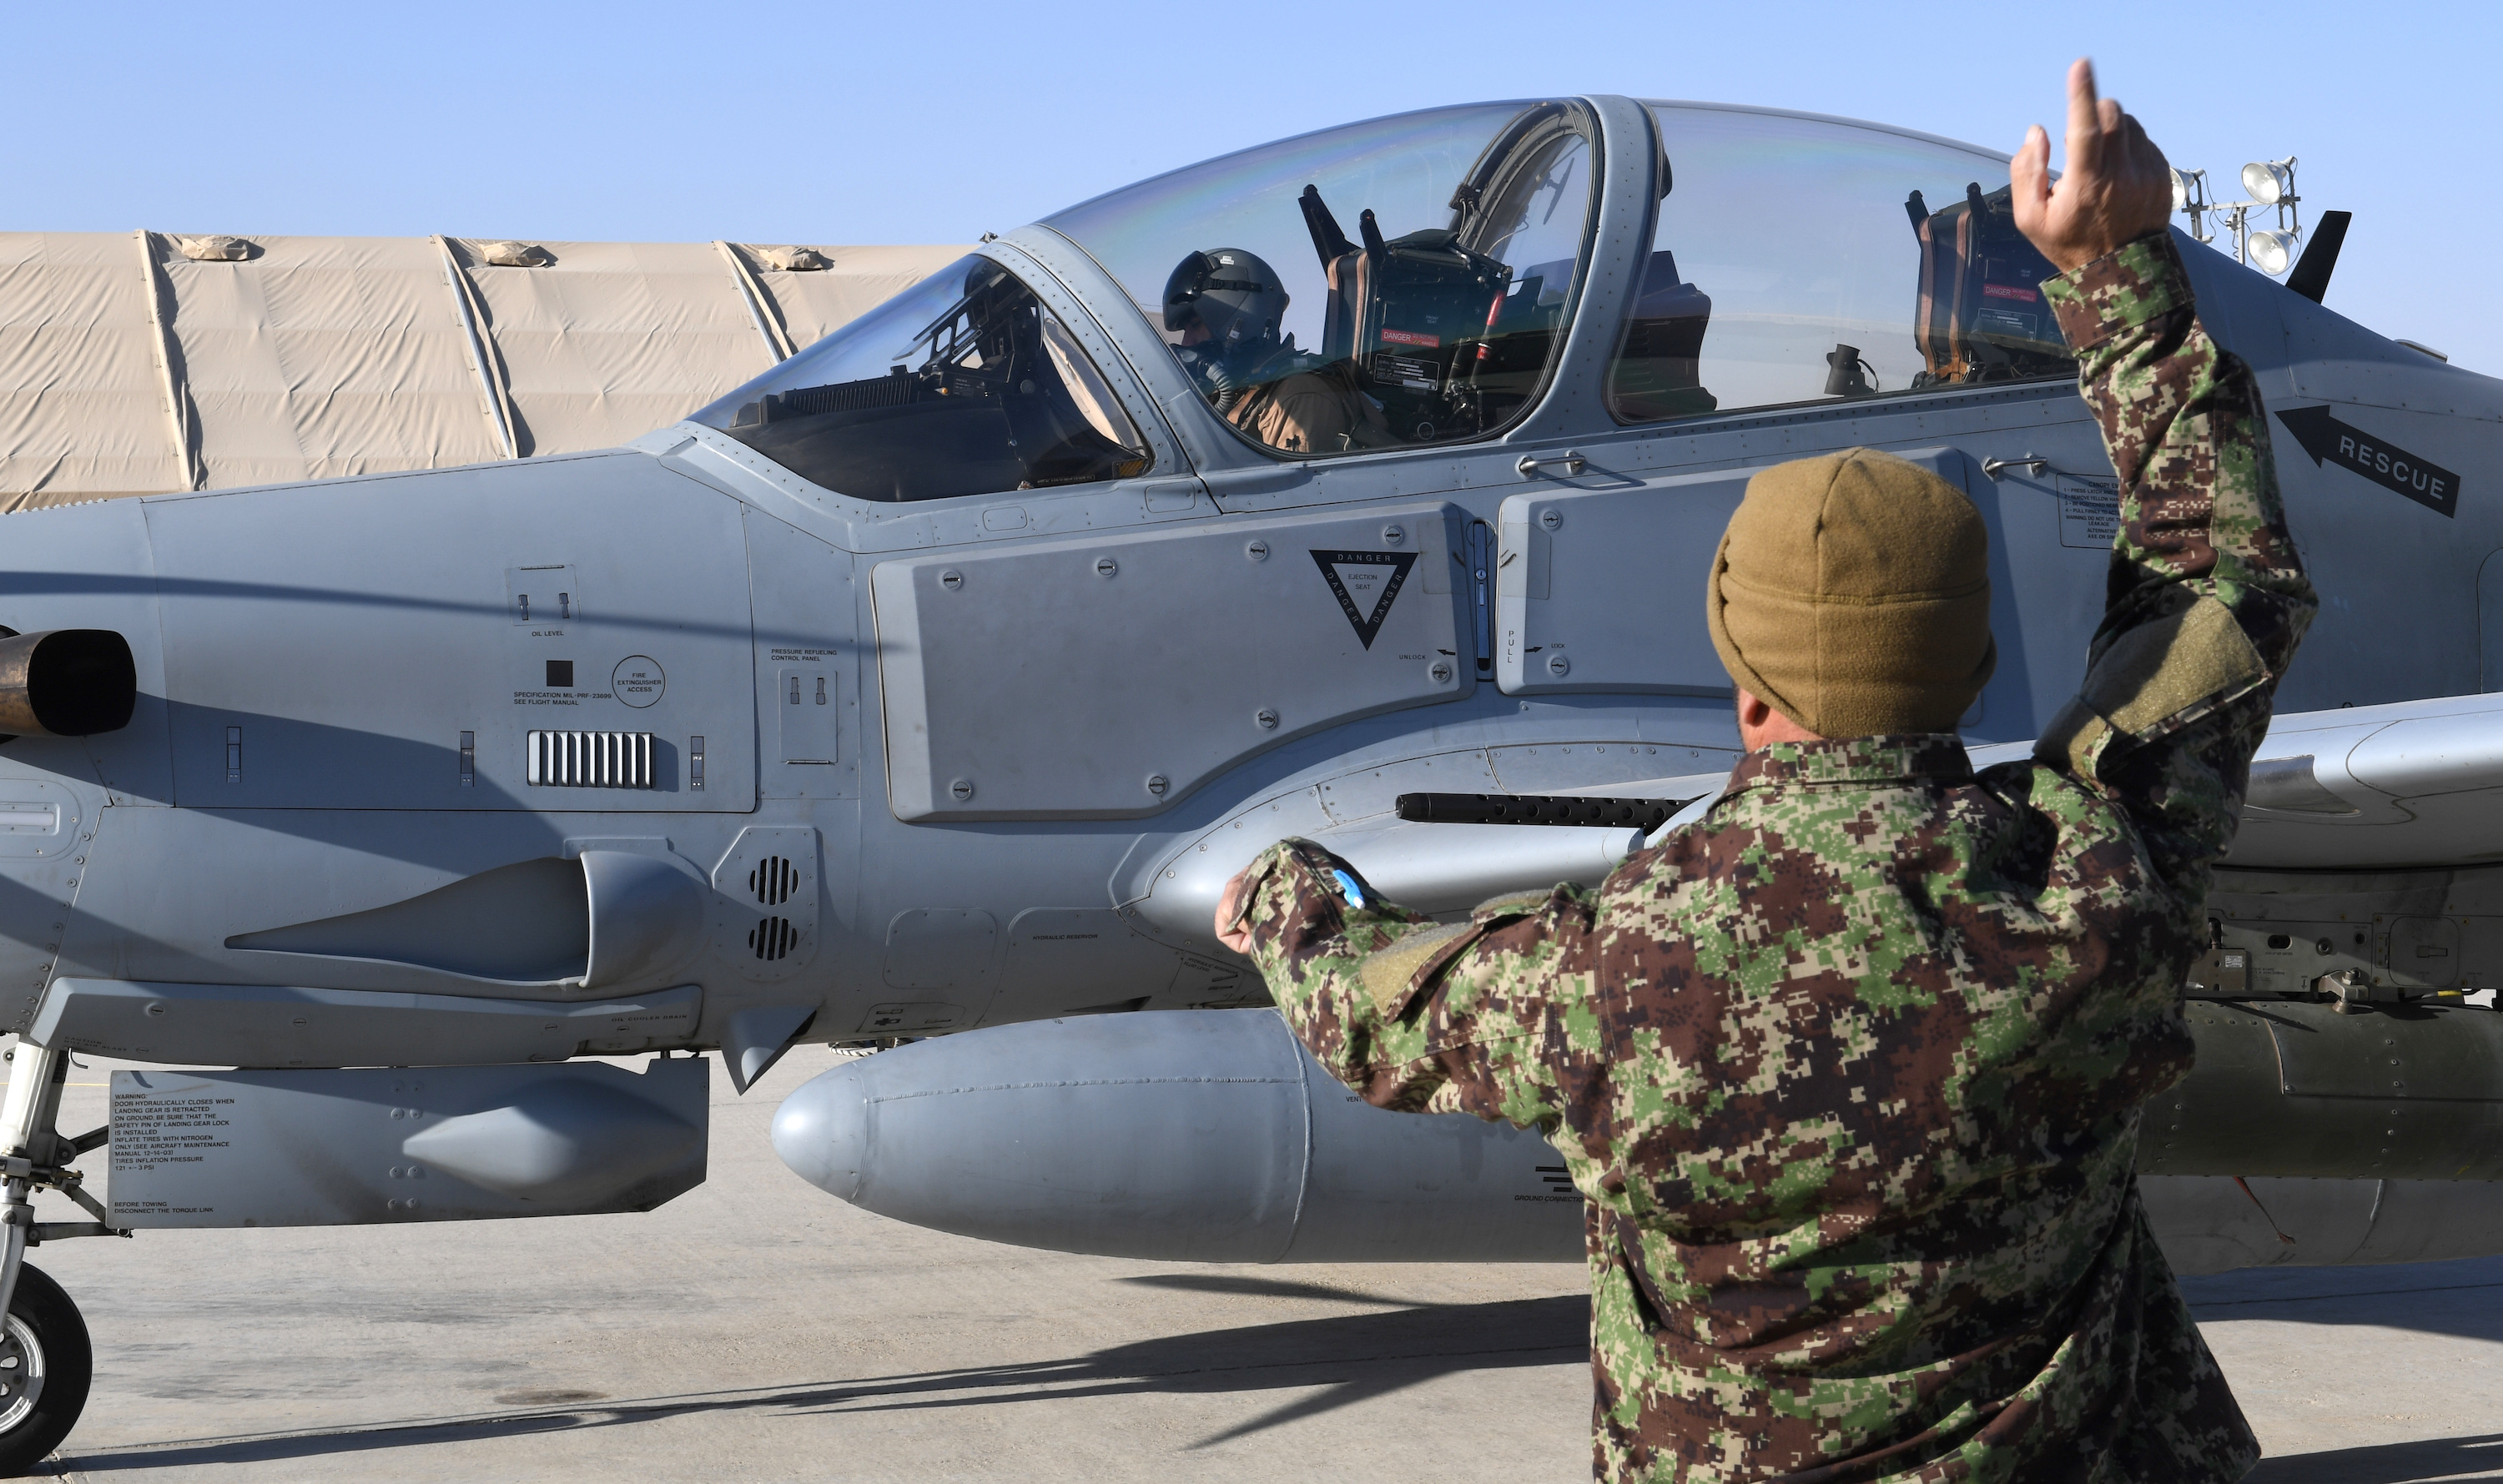 Afghan Air Force's new night capabilities represent growing threat to militants